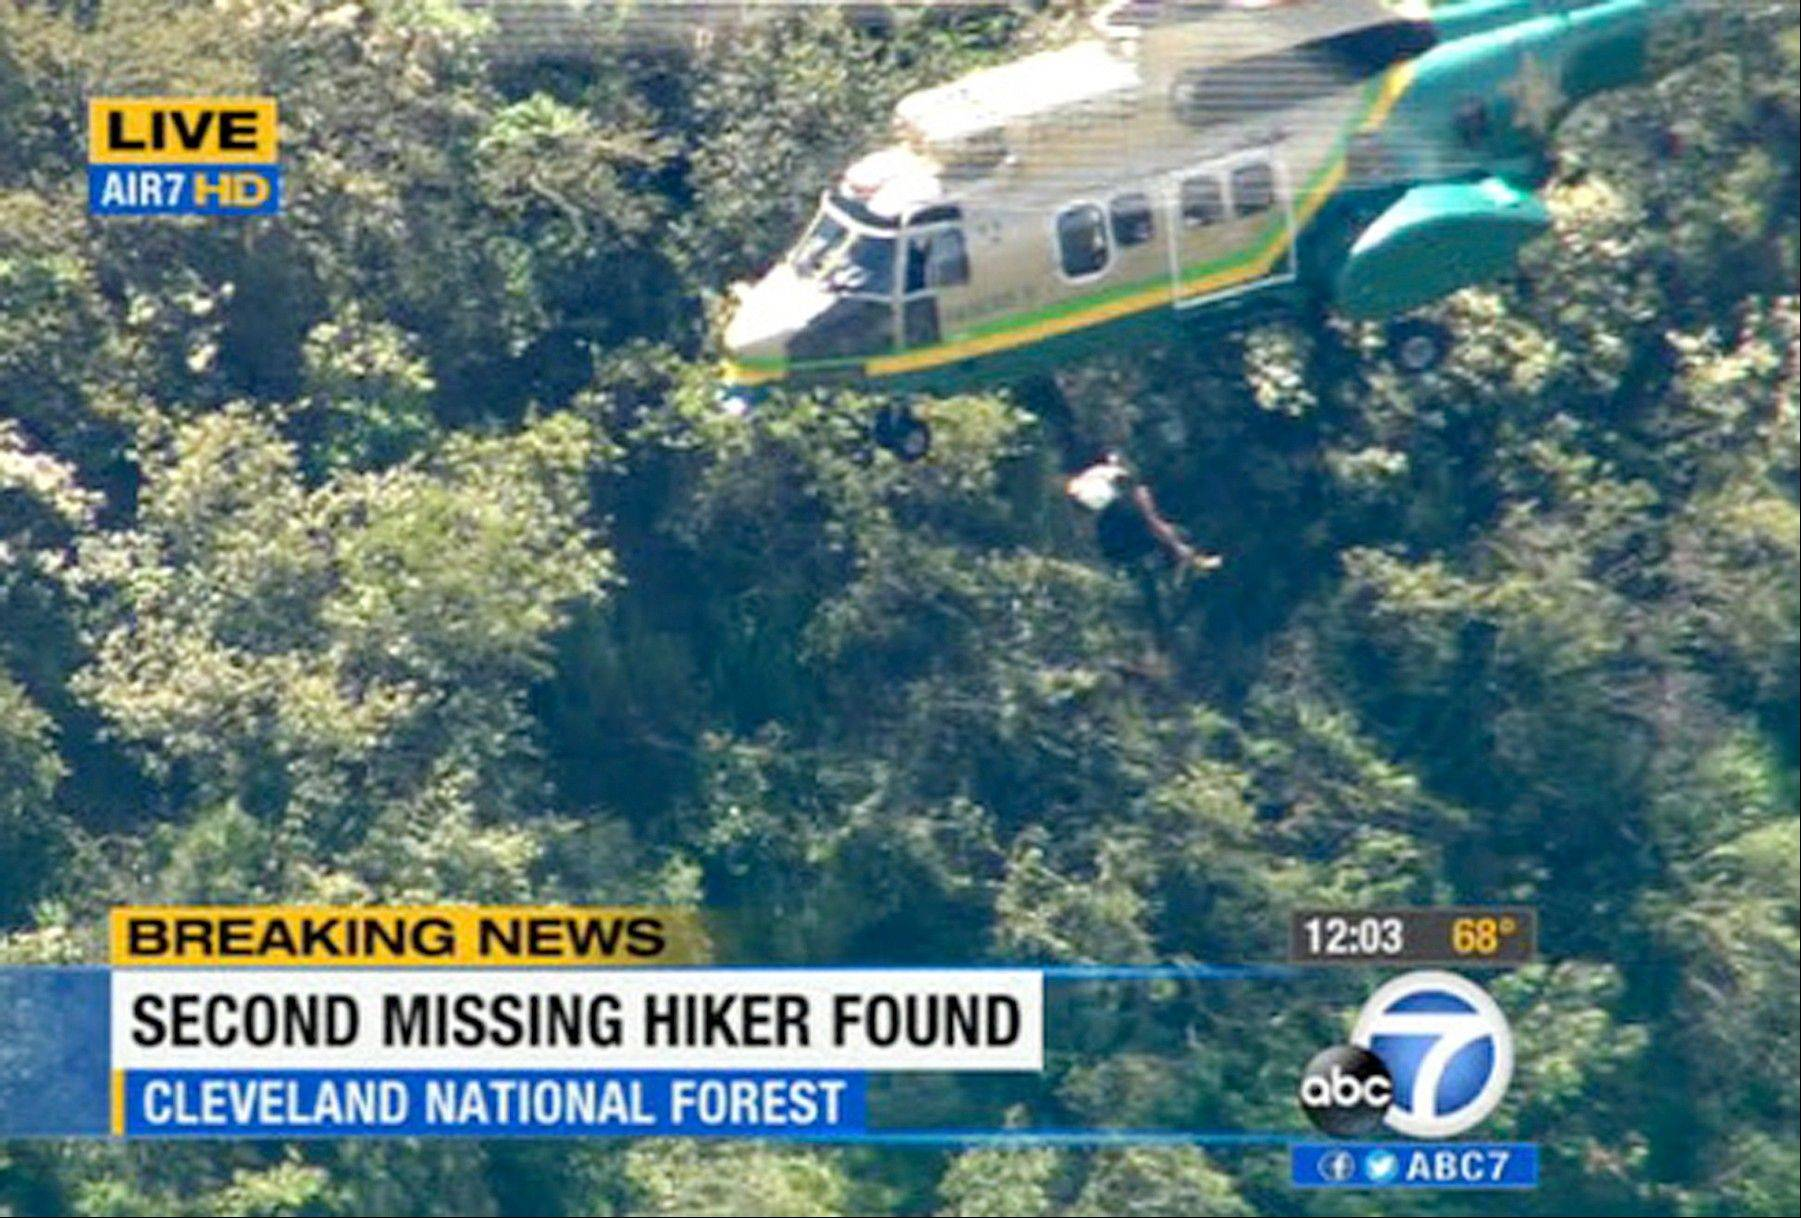 This video image provided by KABC-TV shows the air rescue of Kyndall Jack, 18, who was hoisted out of Cleveland National Forest, California, after being missing for four days, Thursday April 4, 2013. Her hiking companion, Nicolas Cendoya, 19, was discovered without shoes by another hiker Wednesday less than a mile from where the pair�s car was parked.